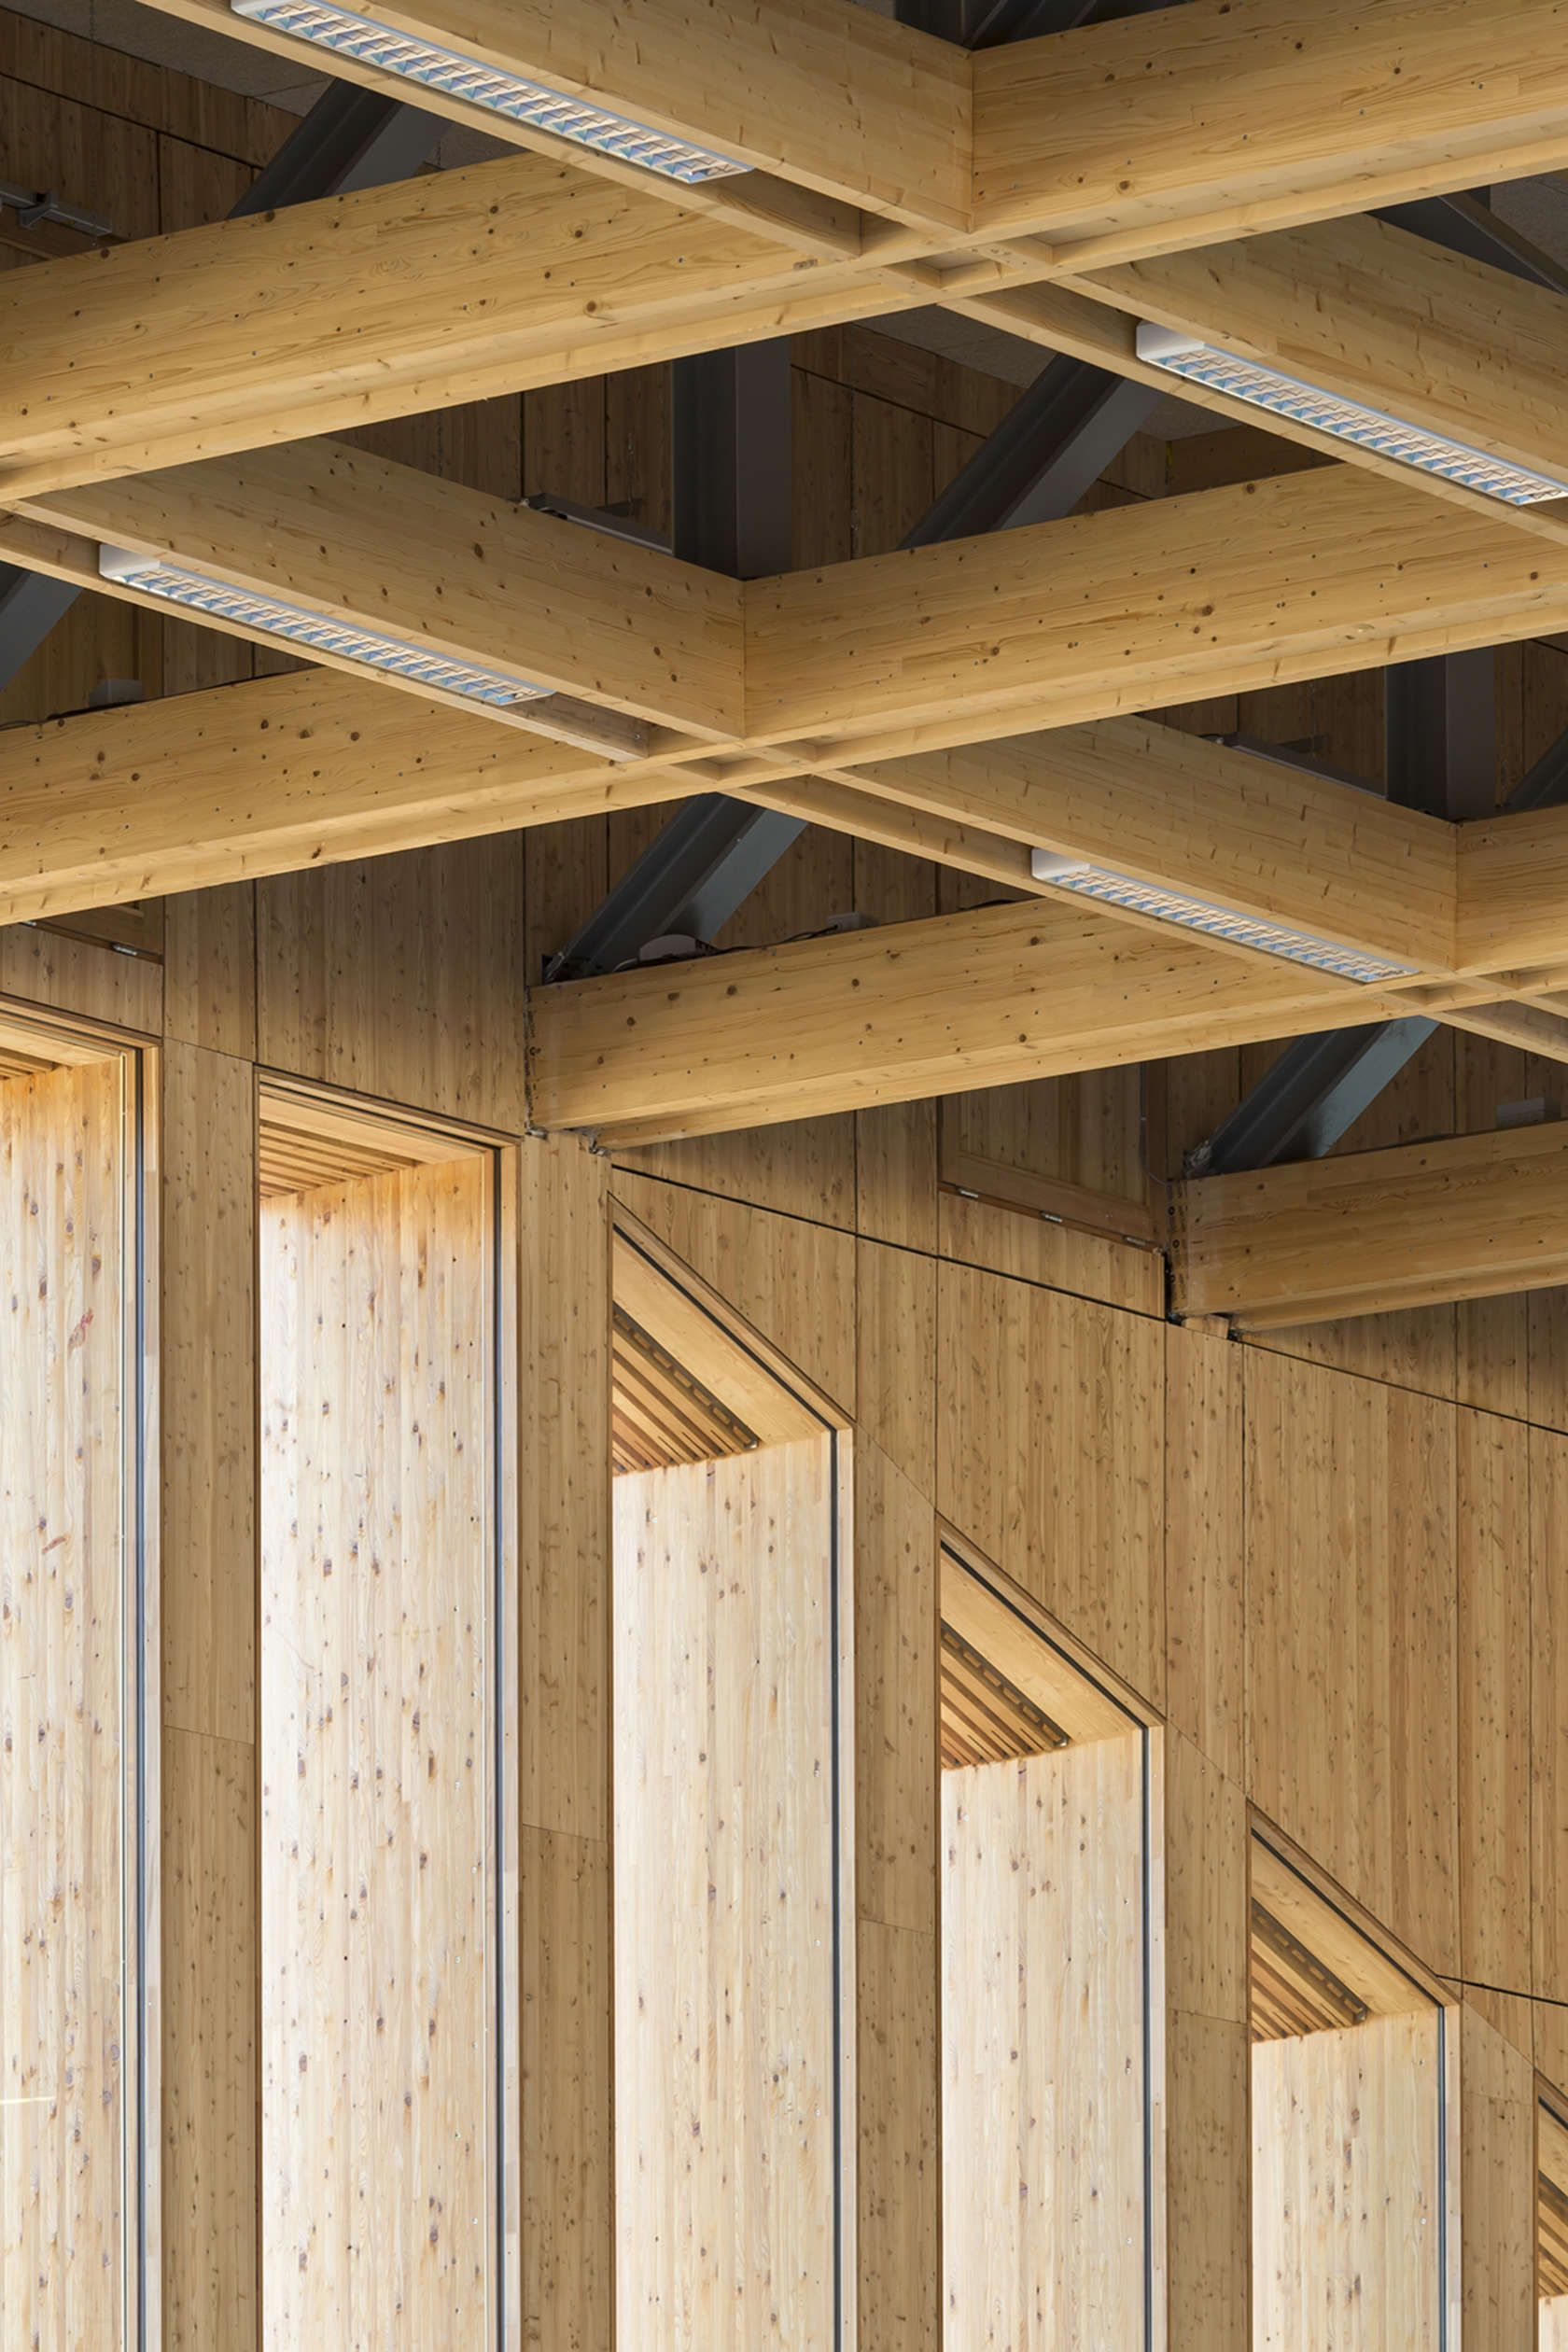 Sports hall in Strasbourg | ARCH | Wood architecture, Hall ...